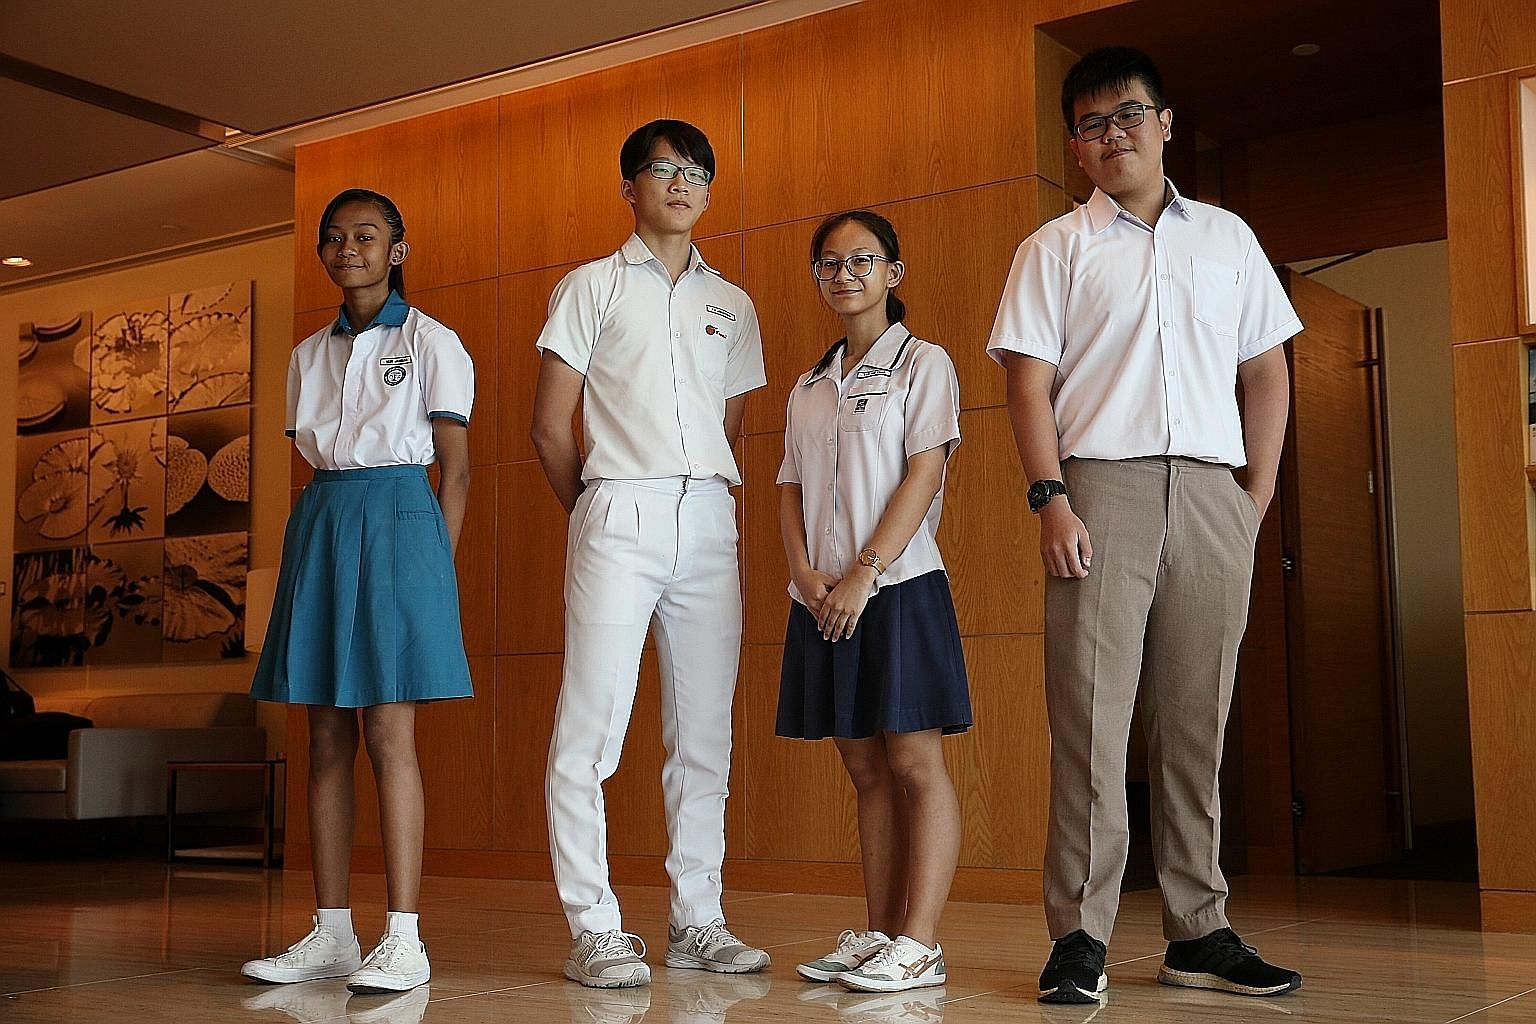 (From left) Nur Jannah Baizurah Abdullah, 12; Xu Jing Feng, 16; Tan Hui Xuan, 15; and Jacky Yeo, 18, are among the 30 beneficiaries of the school pocket money fund who received cash awards from Capital Group for doing well in their co-curricular activitie